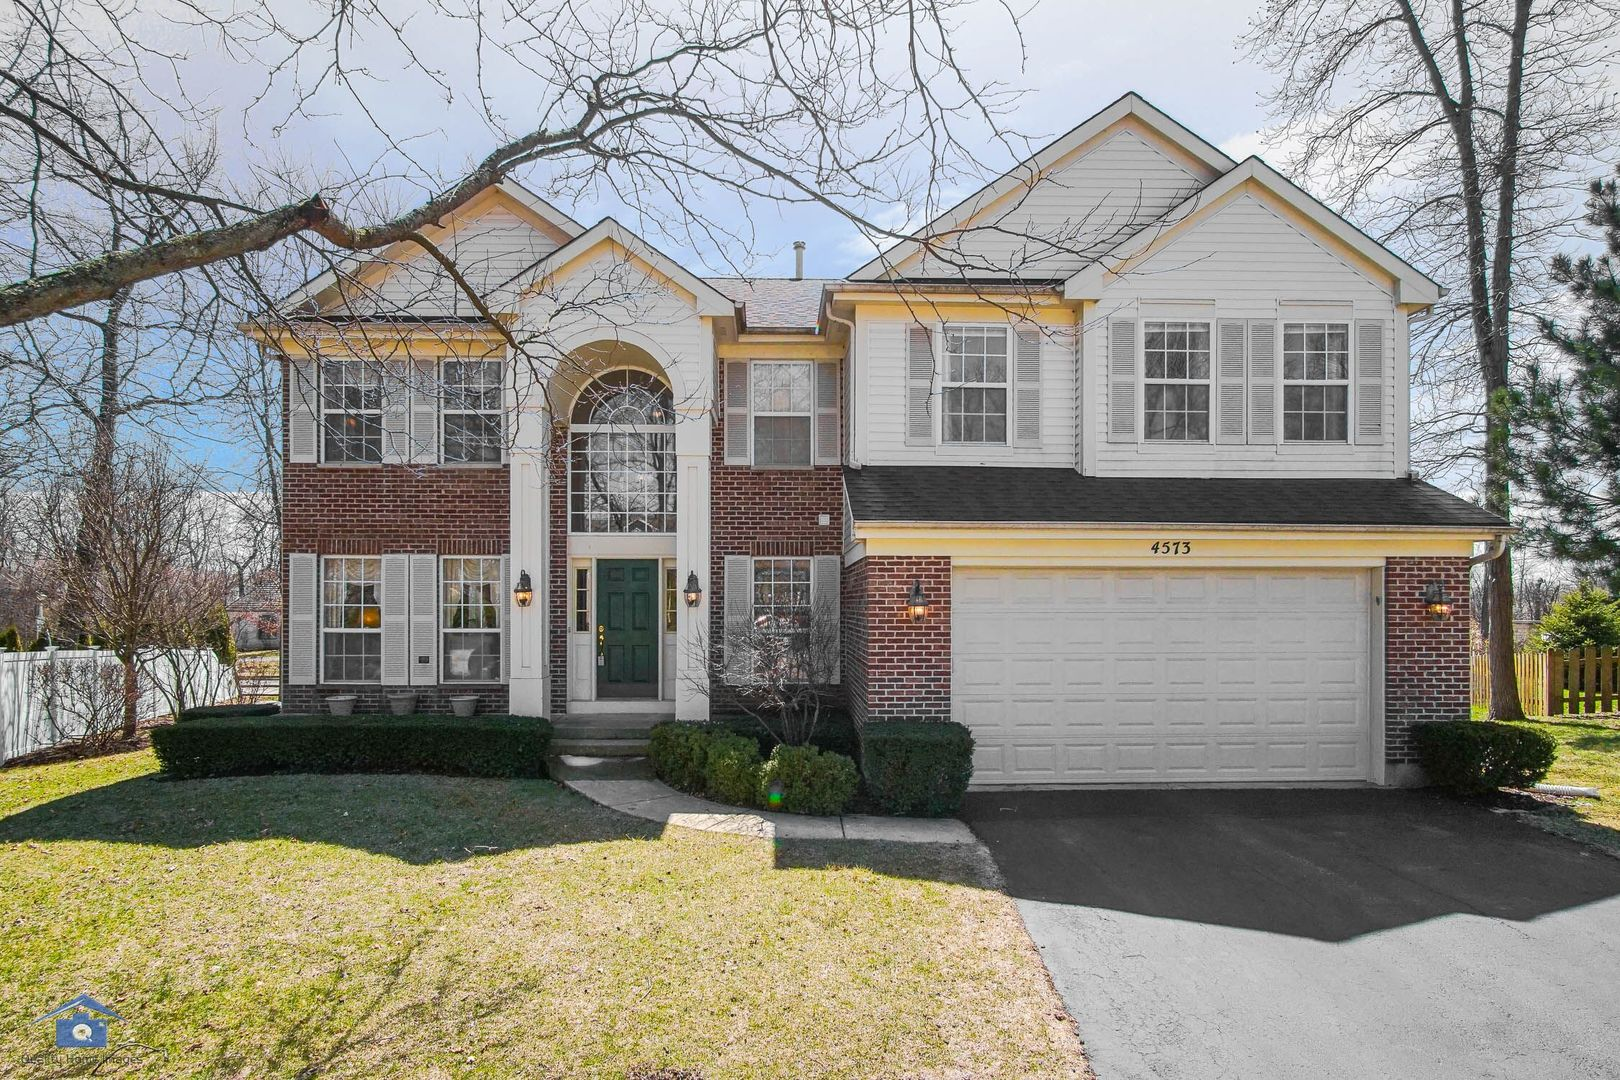 4573 Wren Court North East, Libertyville in Lake County, IL 60048 Home for Sale